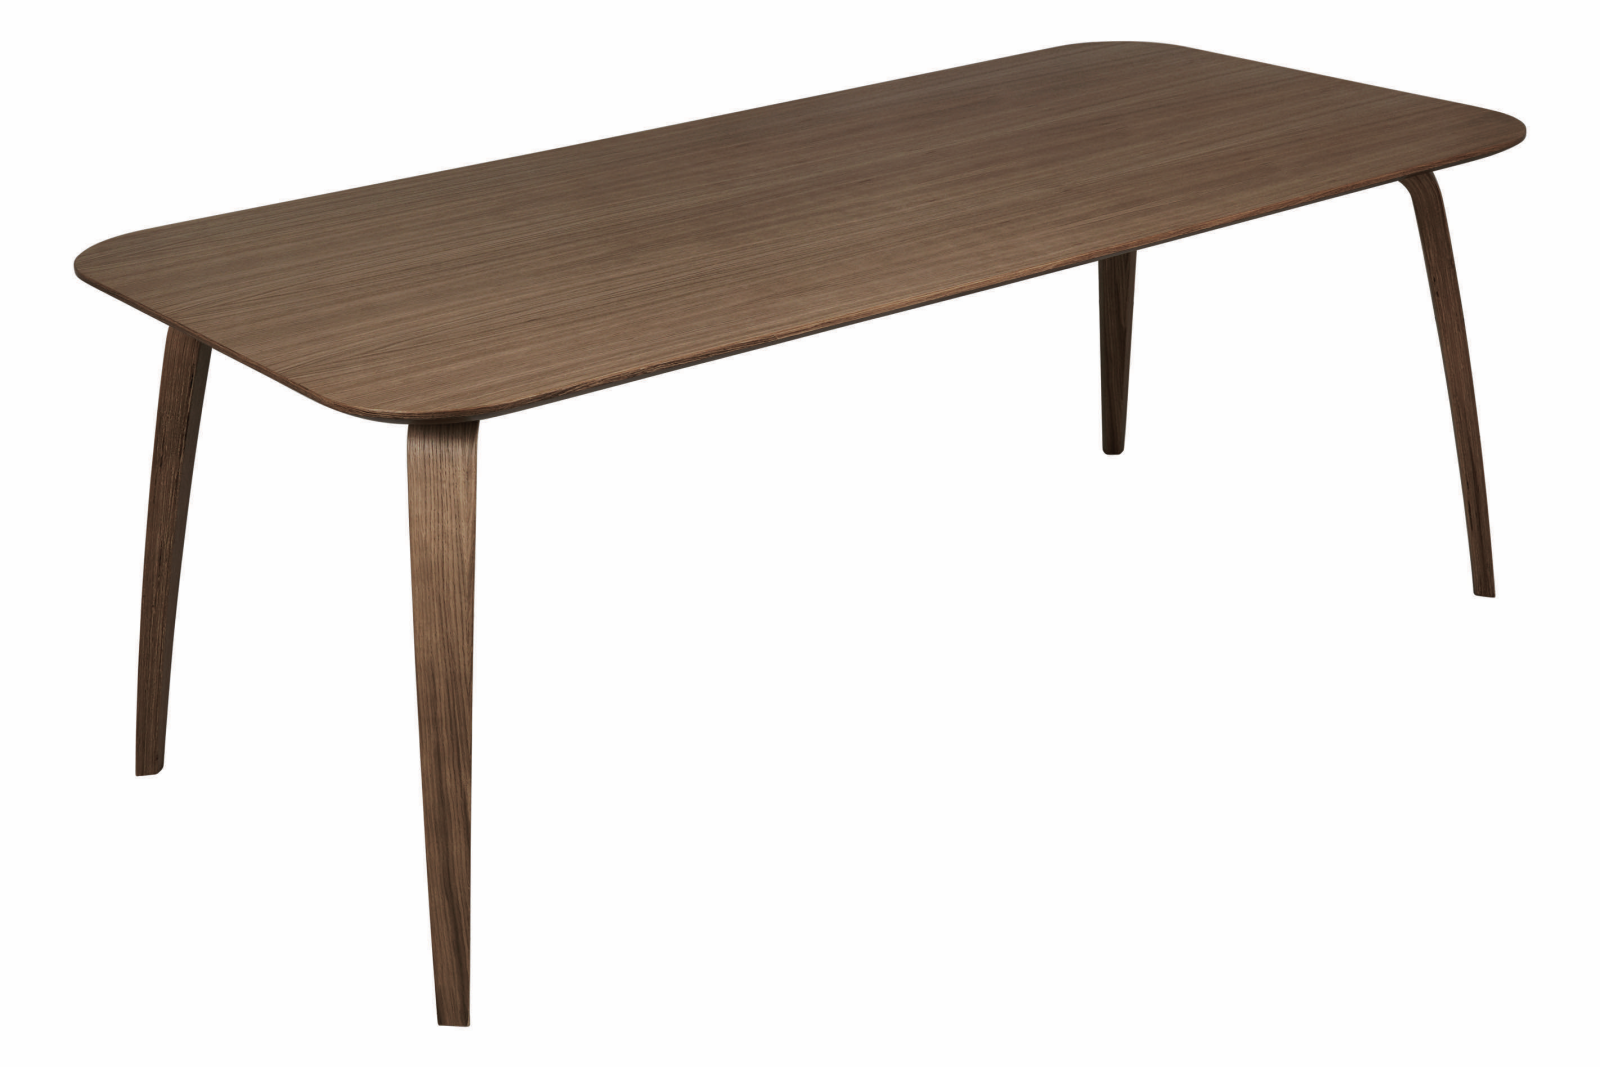 Gubi Rectangular Dining Table Gubi Wood American Walnut, 100 x 200cm